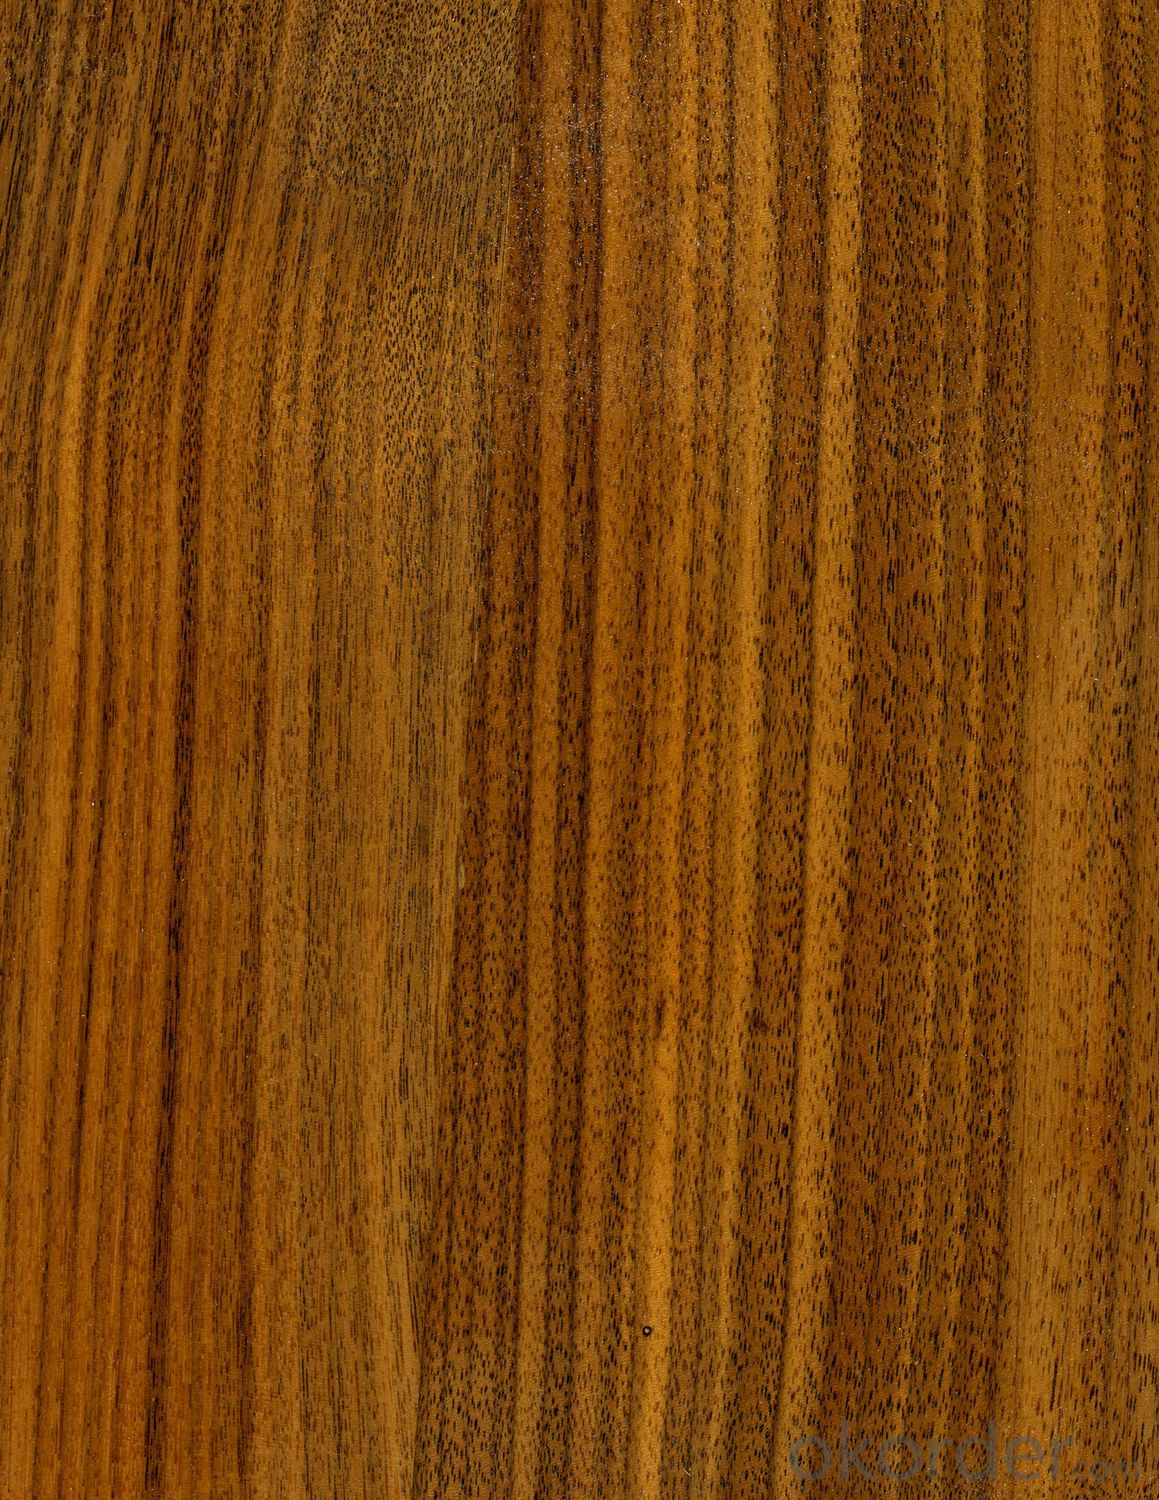 Wood Grain Laminate ~ Buy high pressure laminate hpl decorative exterior board